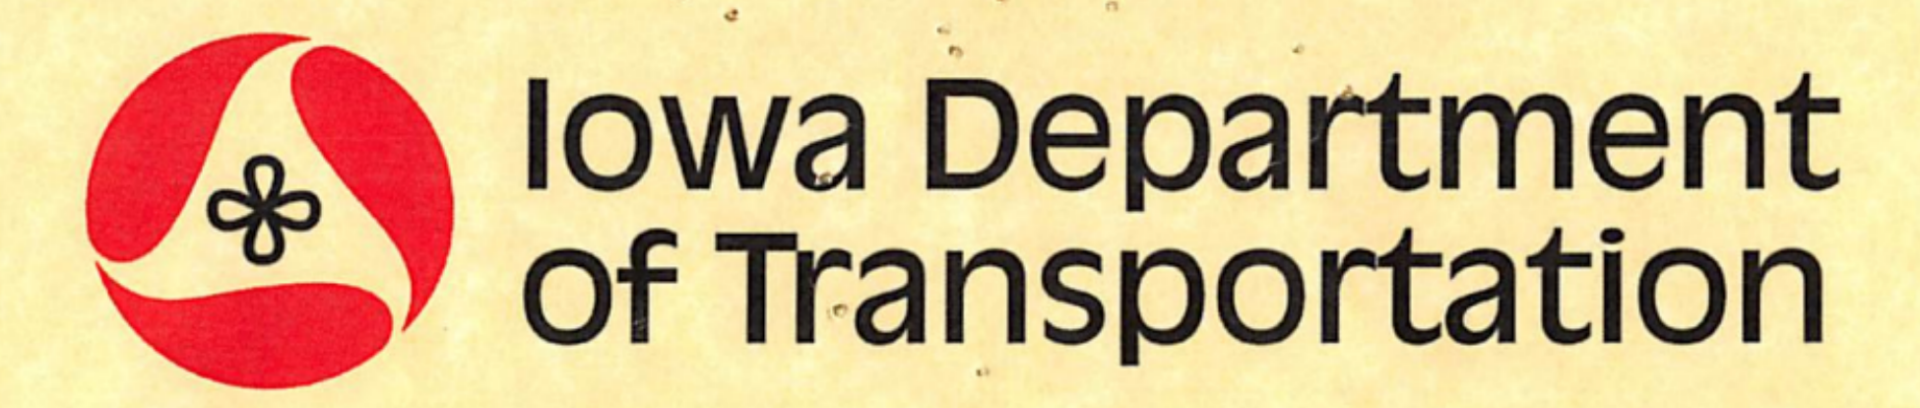 https://kimconstruction.com/wp-content/uploads/2020/04/BADGE-000-IOWA-Dept-of-Transportaion.png